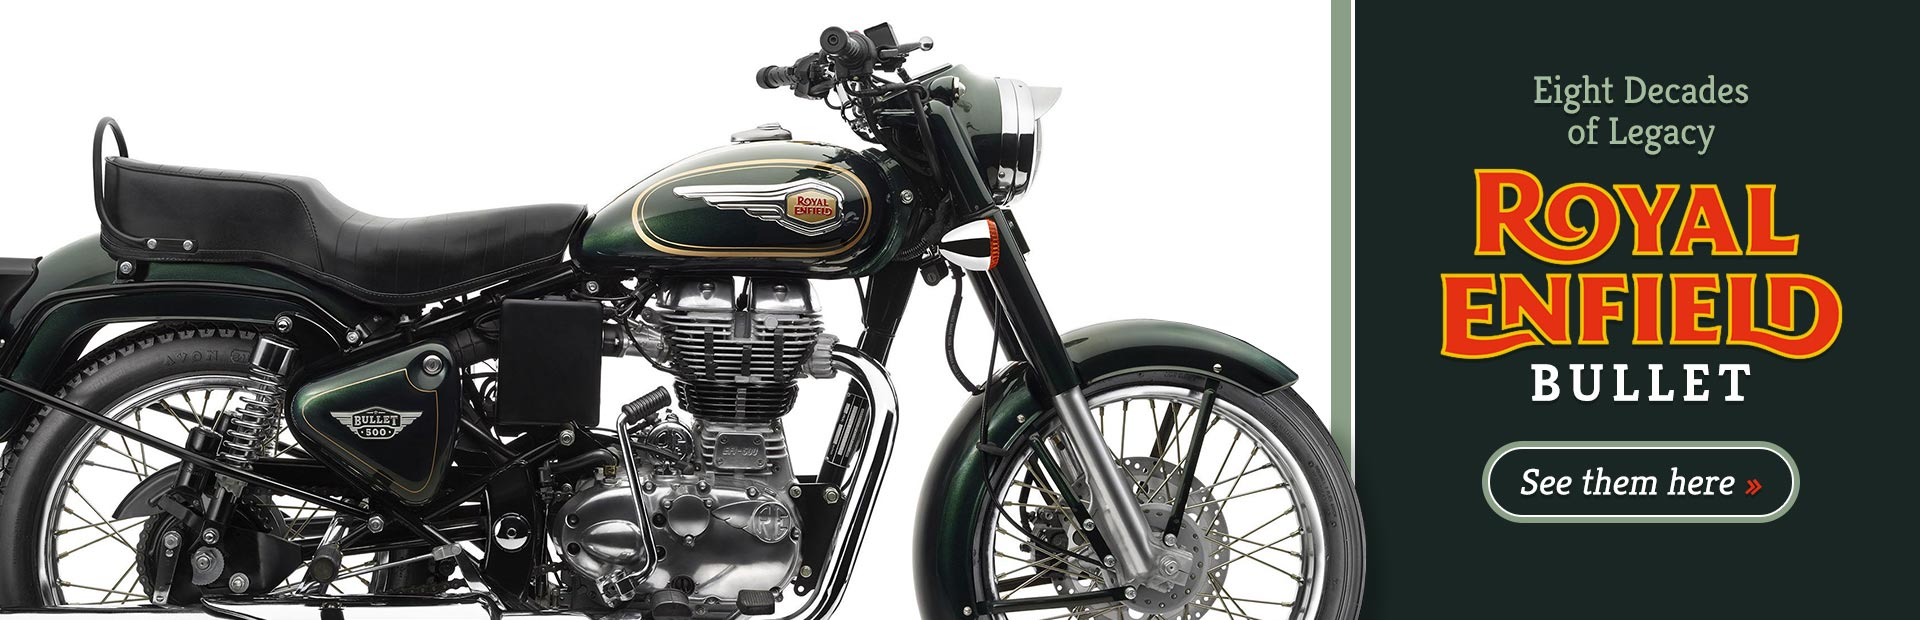 Royal Enfield Bullet: Click here for details.